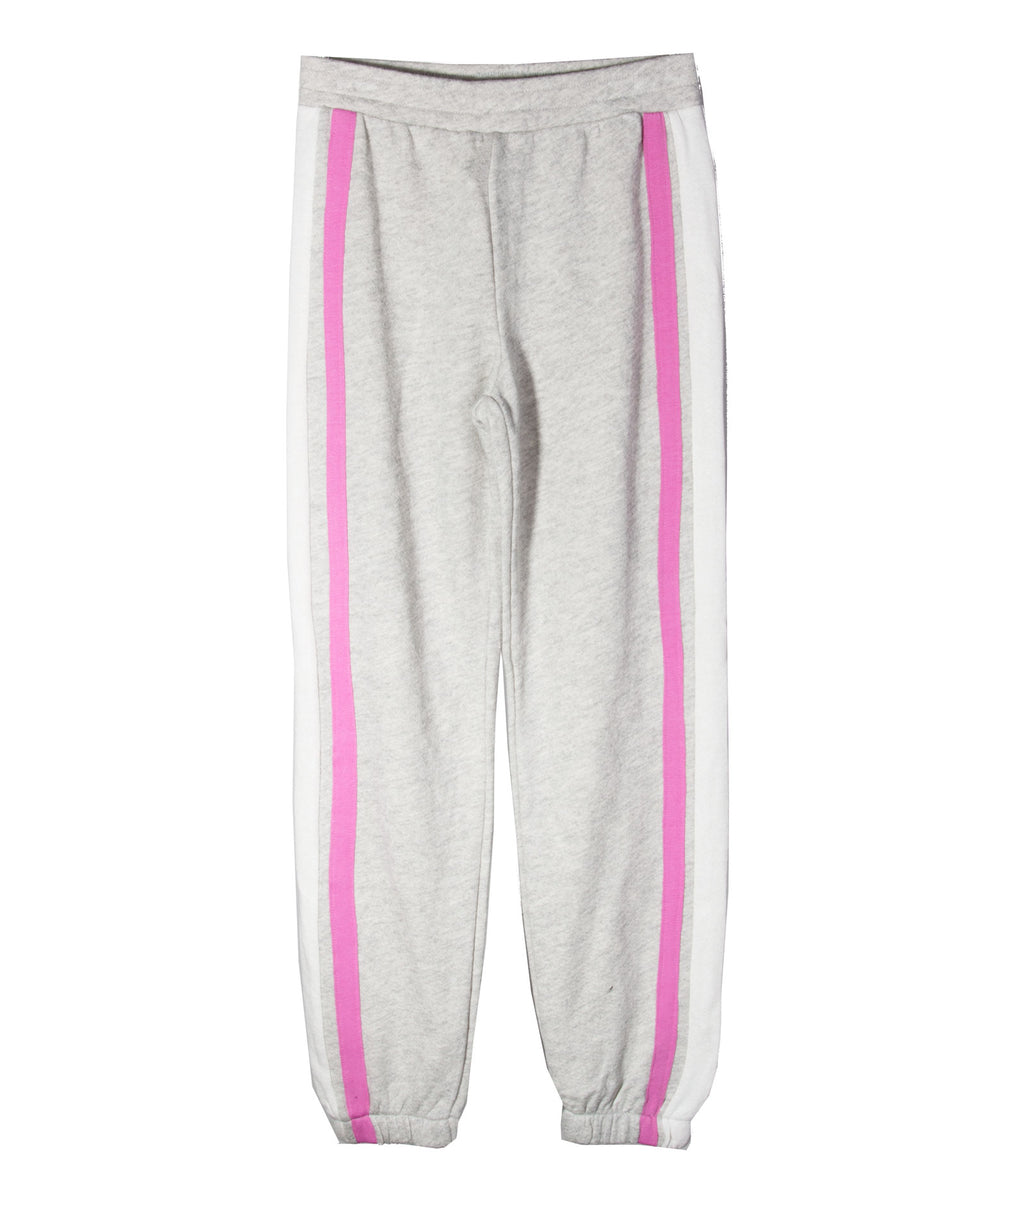 Me.n.u. Girls Heather Grey Stripe Sweatpants